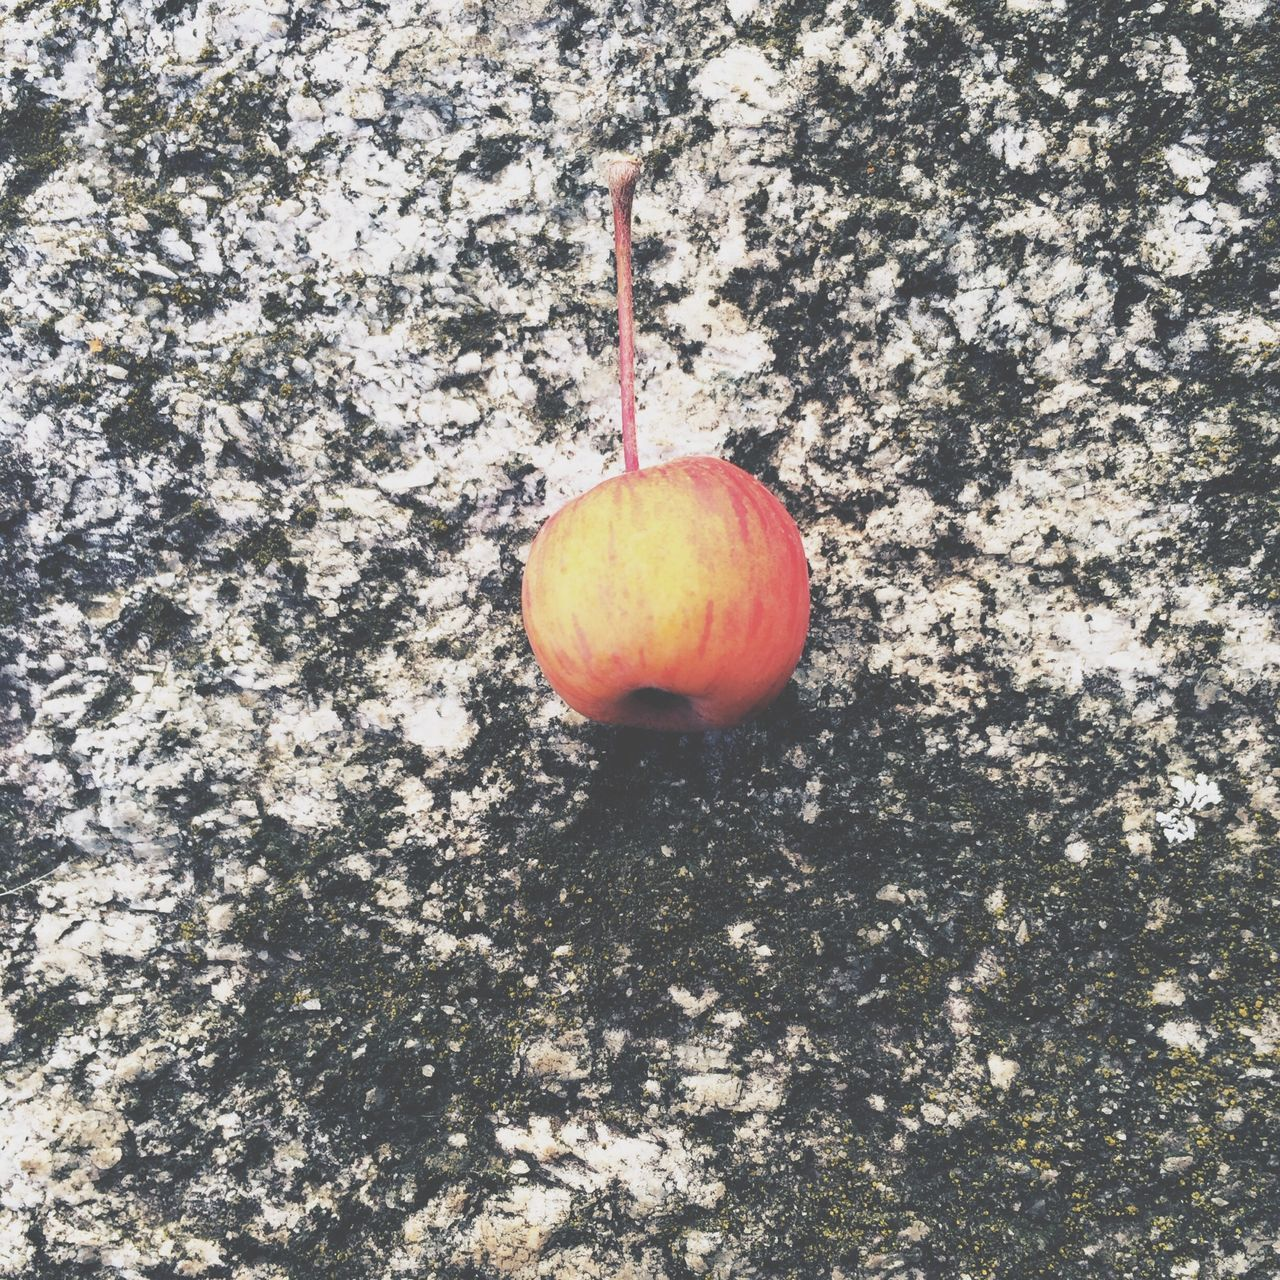 Close-up of apple on ground